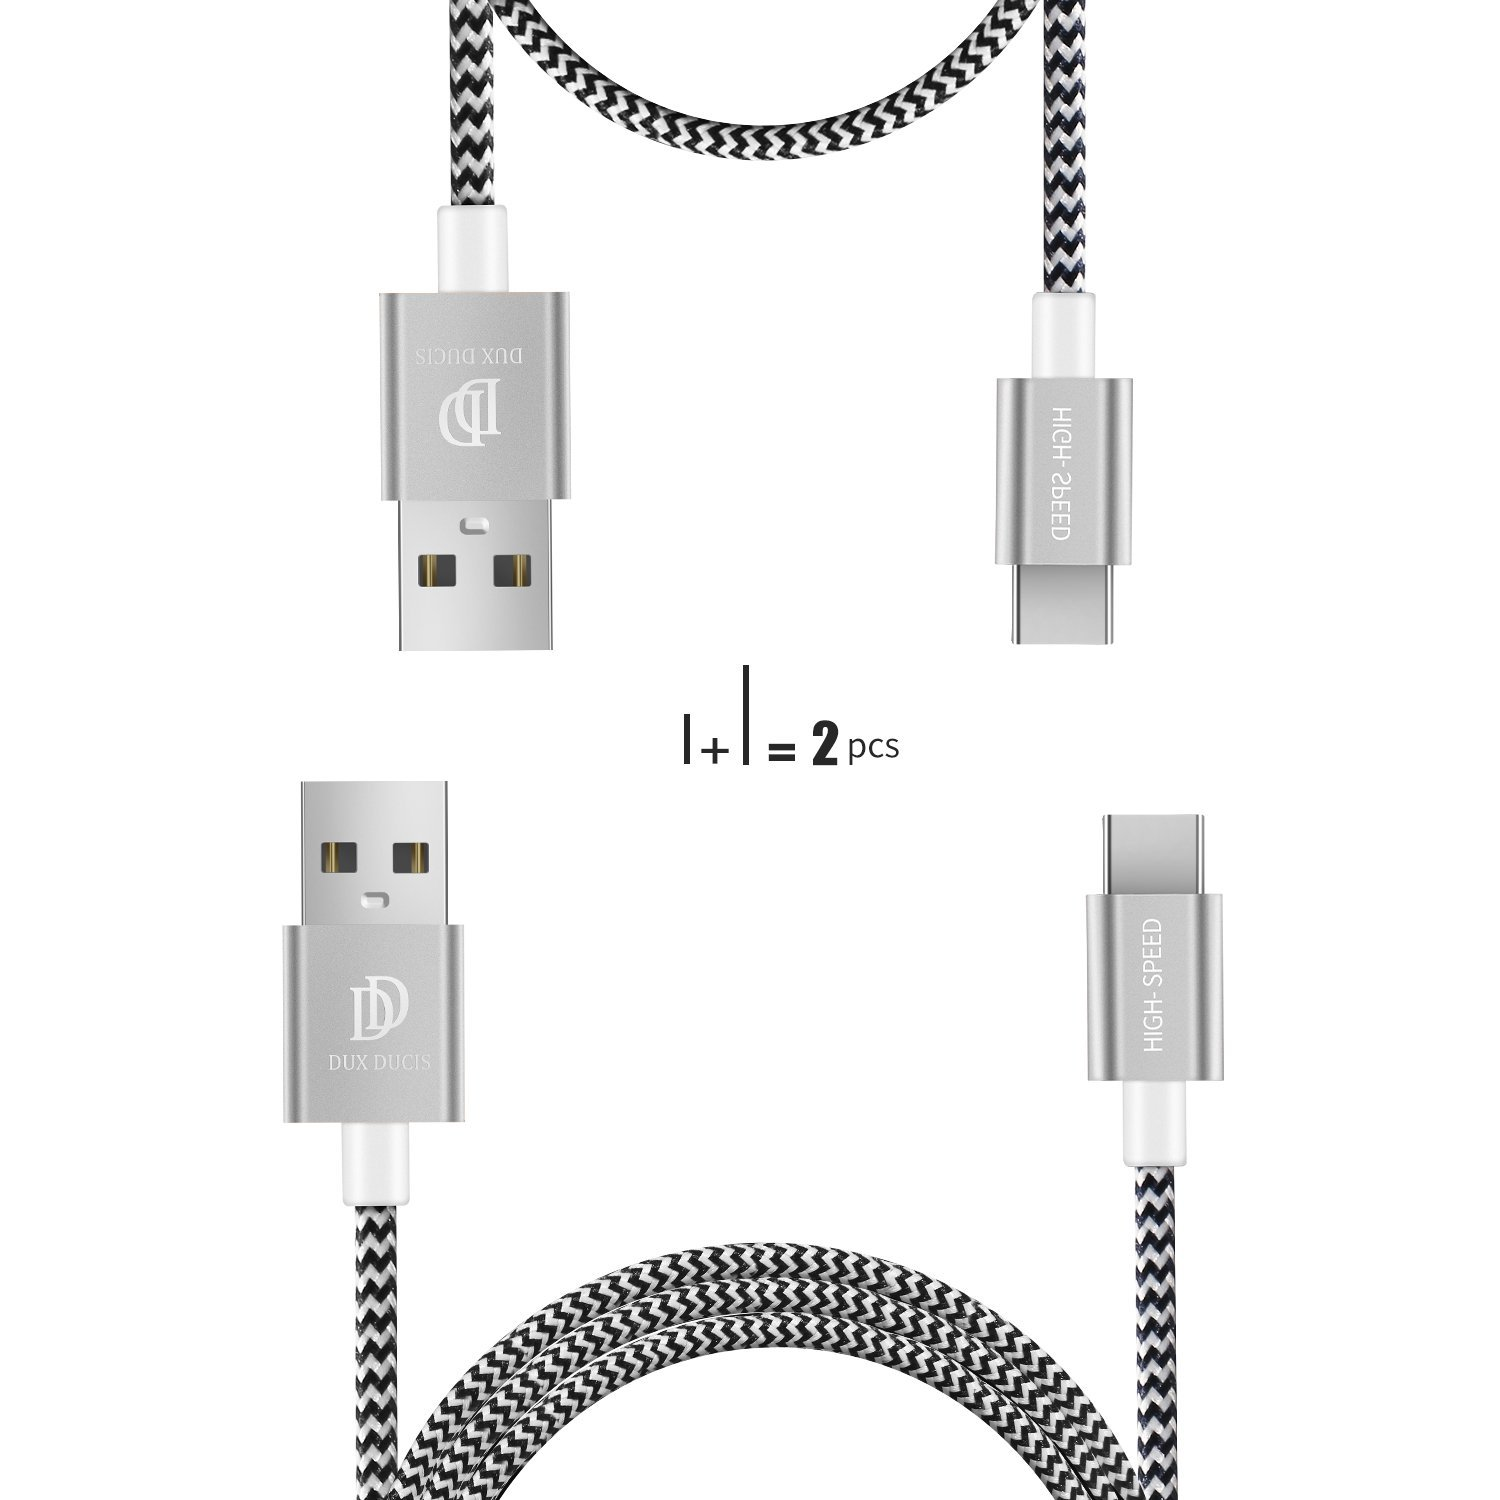 2-Pack USB Type C Cable by D-CASE - Nylon Charging/Data Cable, USB C To USB A for Sony Xperia XZ, LG G5/V20, Google Nexus 5X/6P, Huawei Mate 9/P9 Plus, HTC 10(100CM & 20CM)(silver)